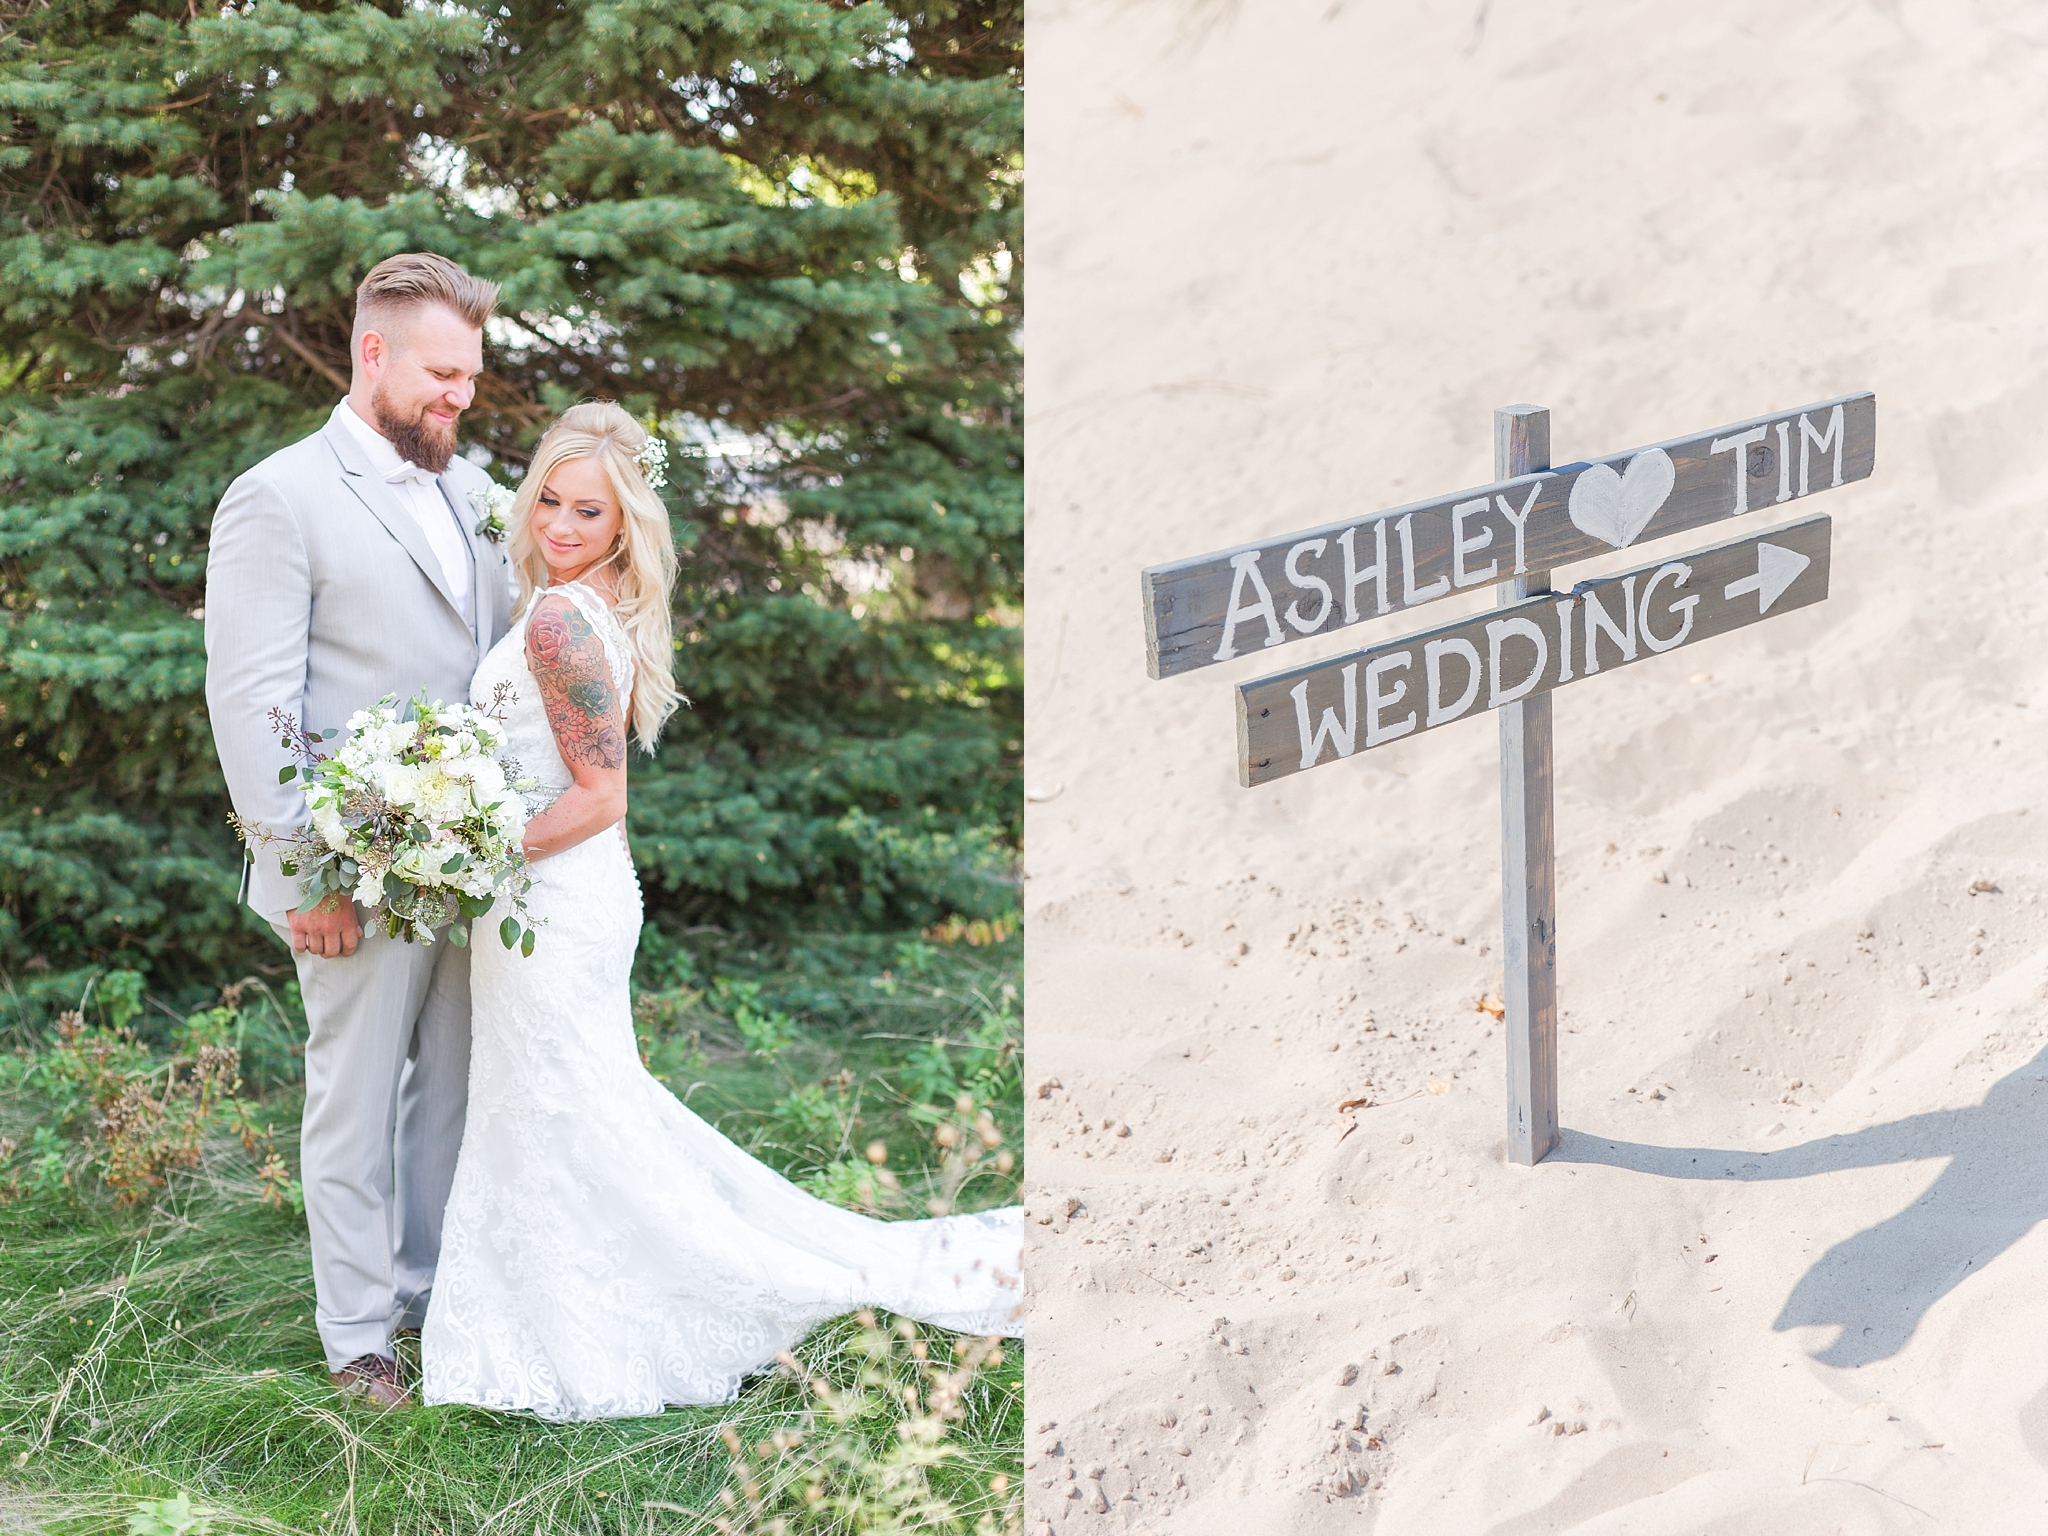 romantic-artful-candid-wedding-photos-in-detroit-lansing-ann-arbor-northern-michigan-and-chicago-by-courtney-carolyn-photography_0006.jpg